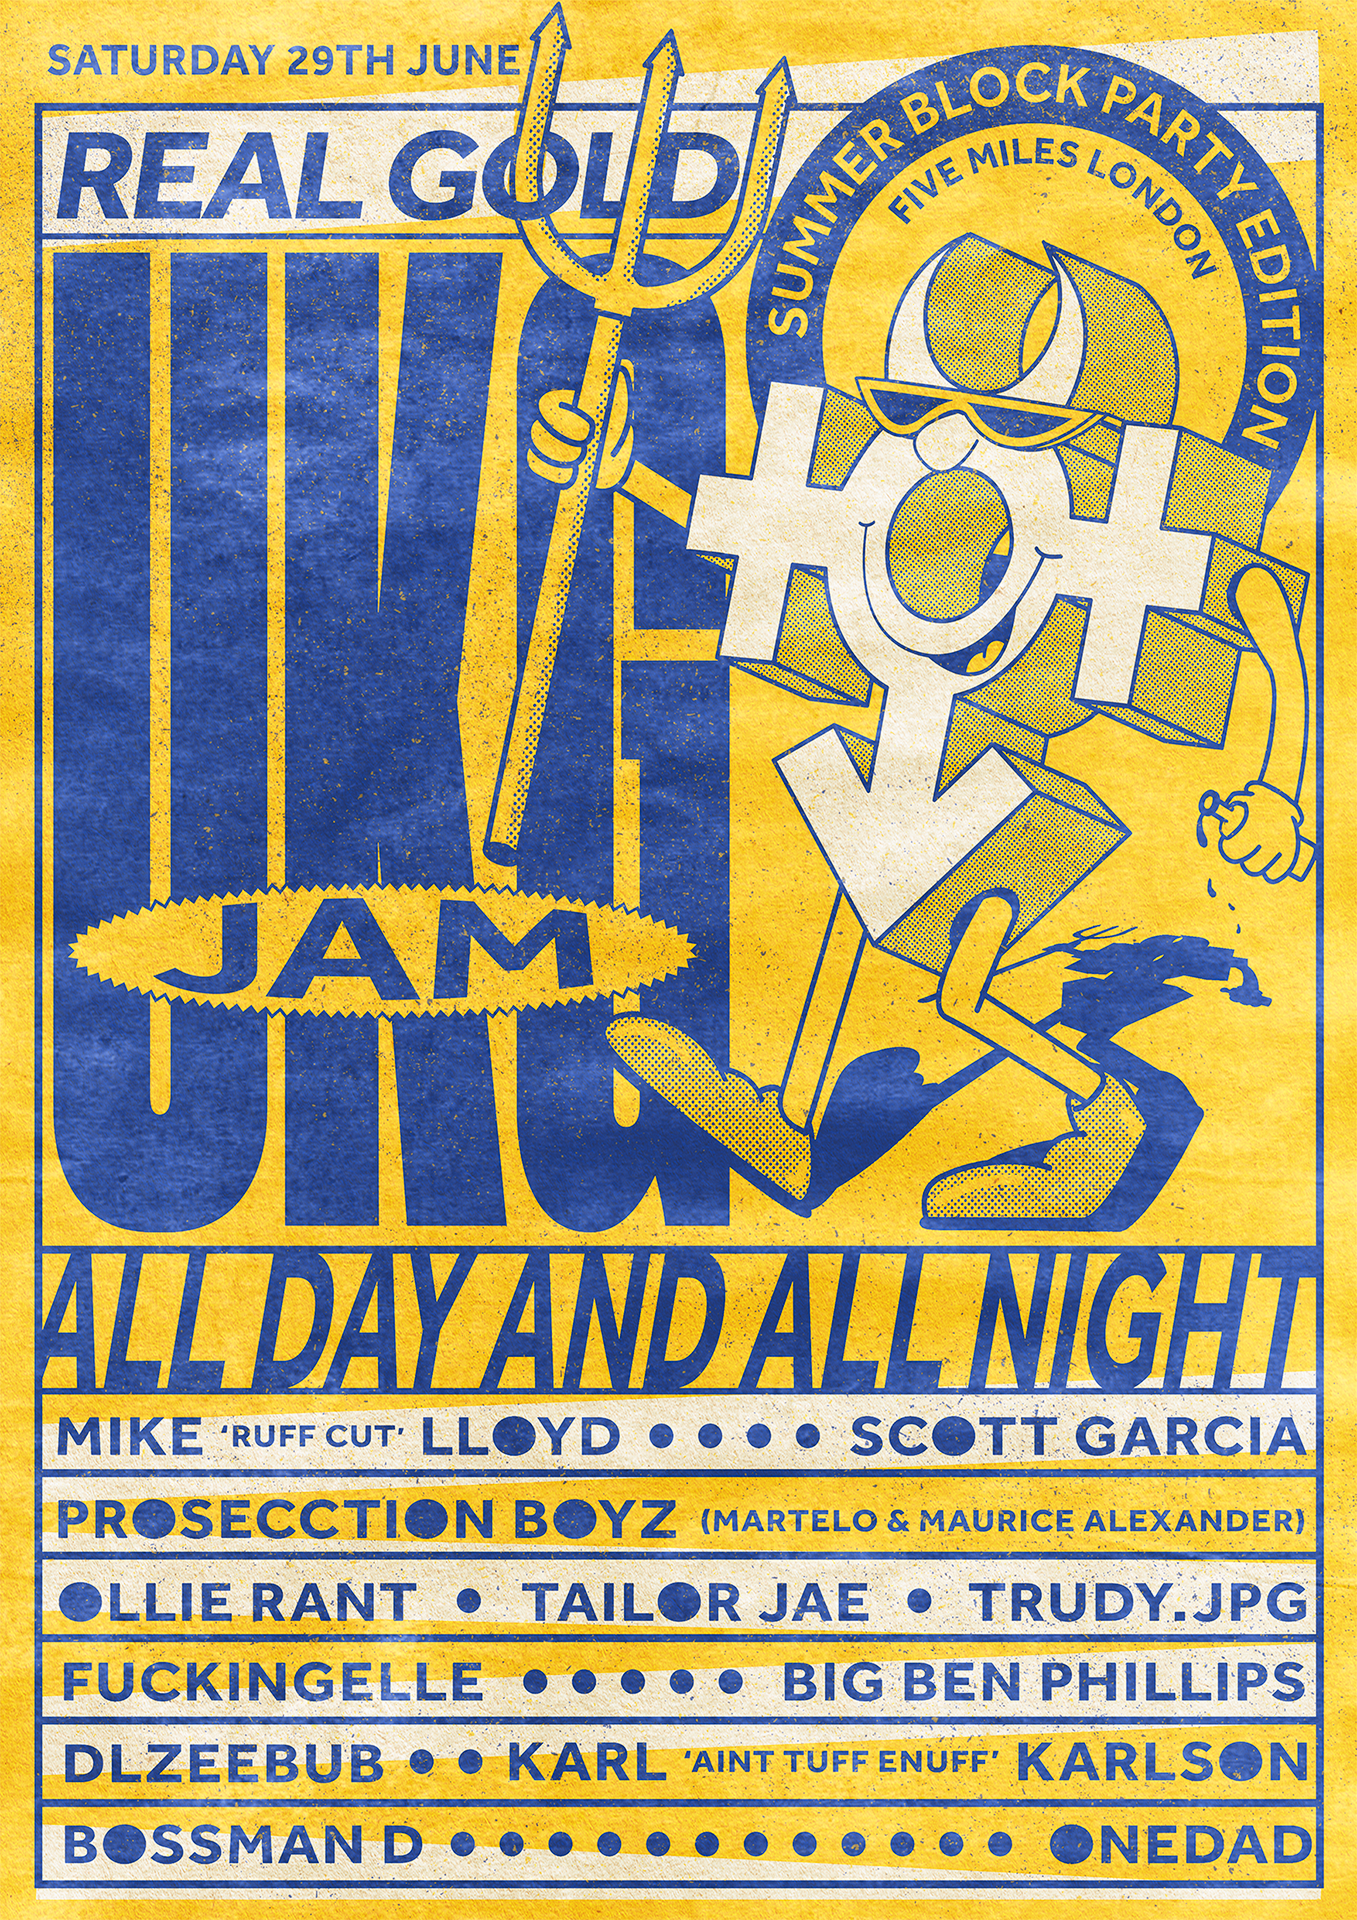 RGEVENT0046 // REAL GOLD UK Garage Jam - Summer Block Party